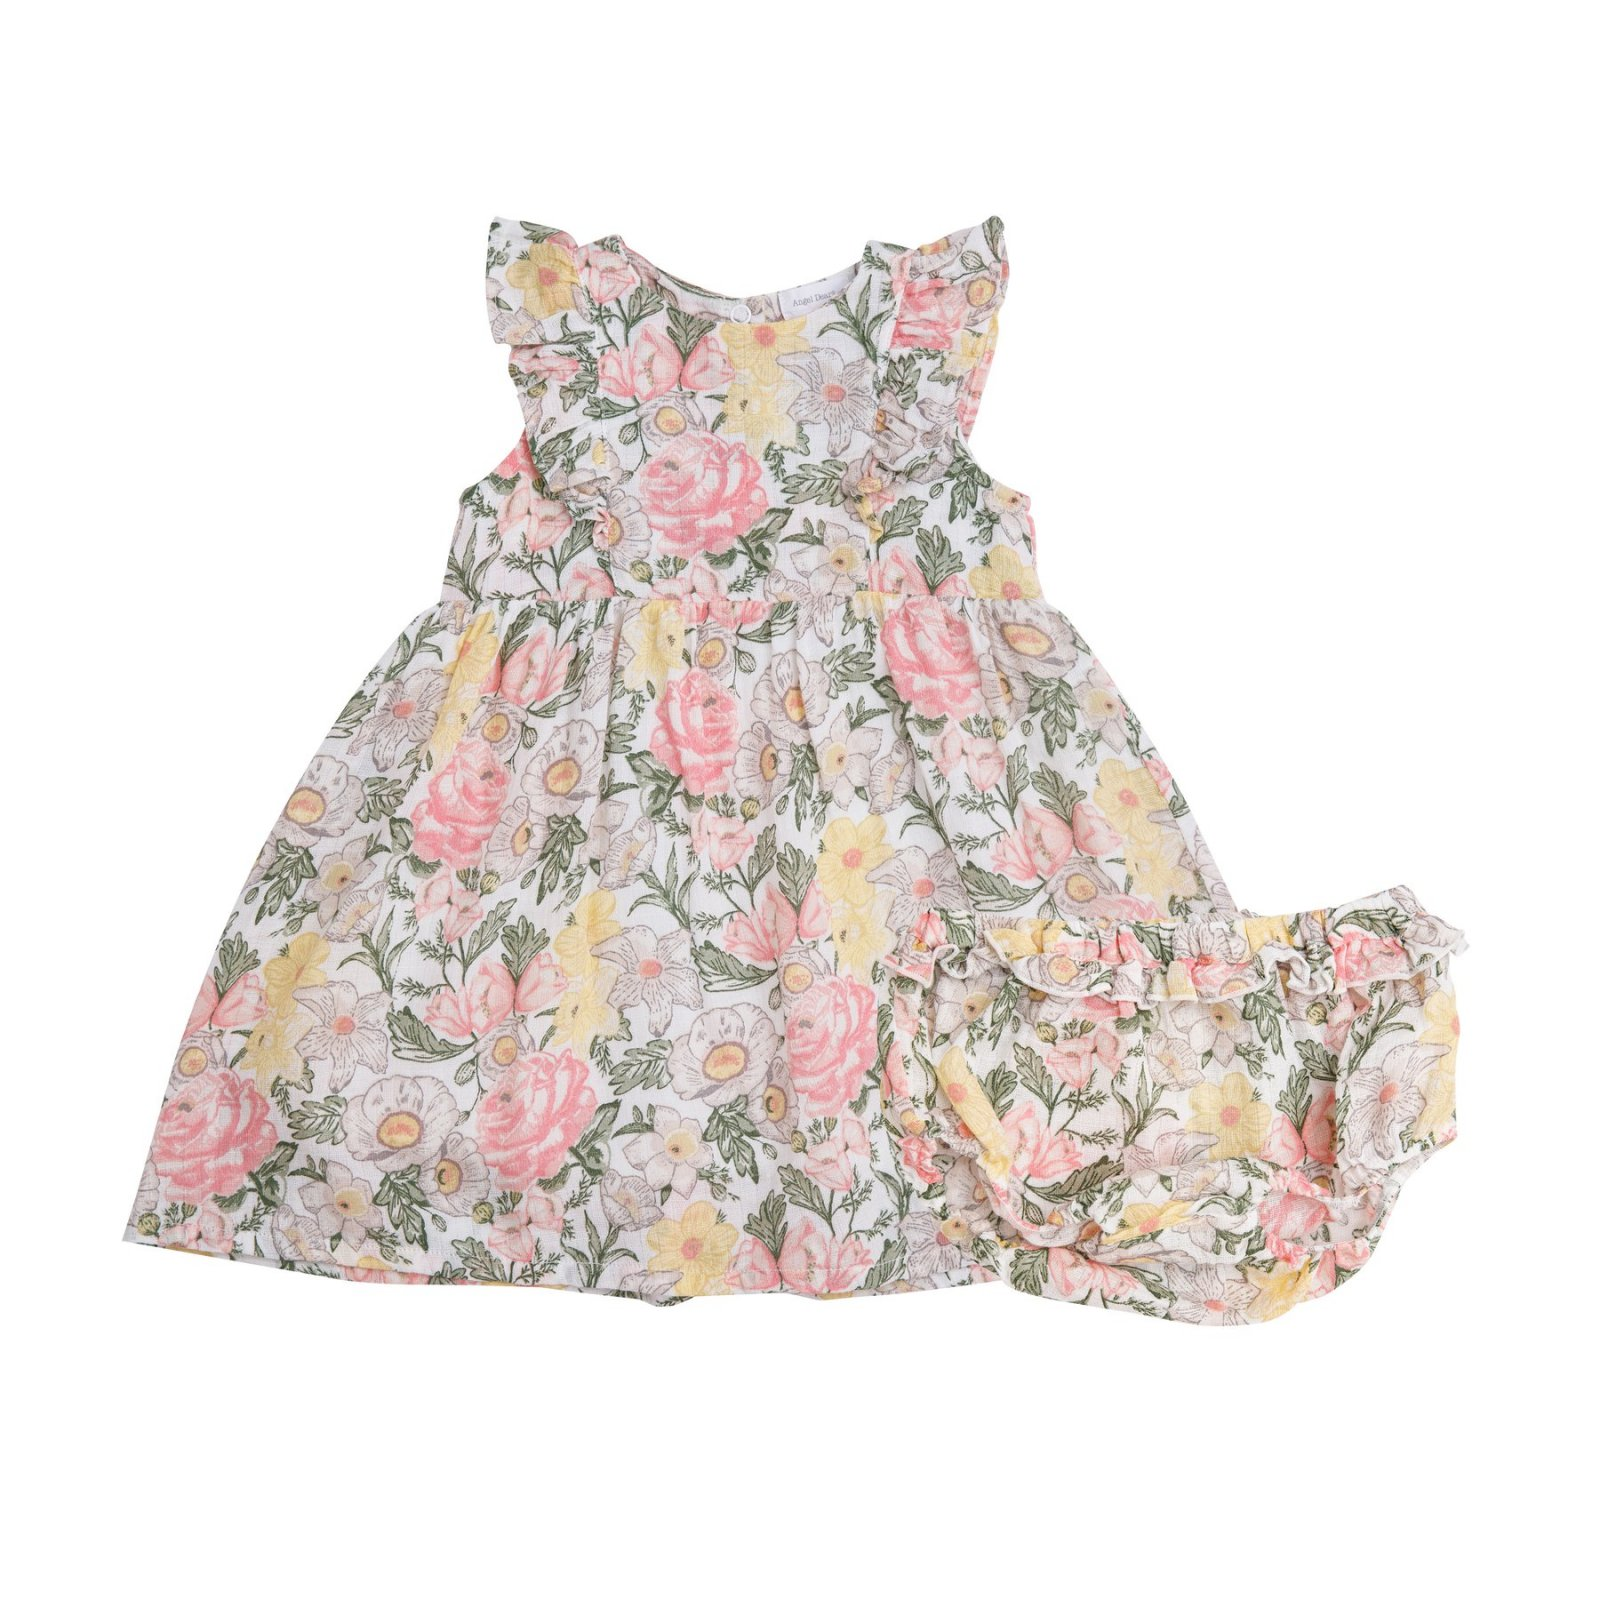 Dress and Diaper Cover